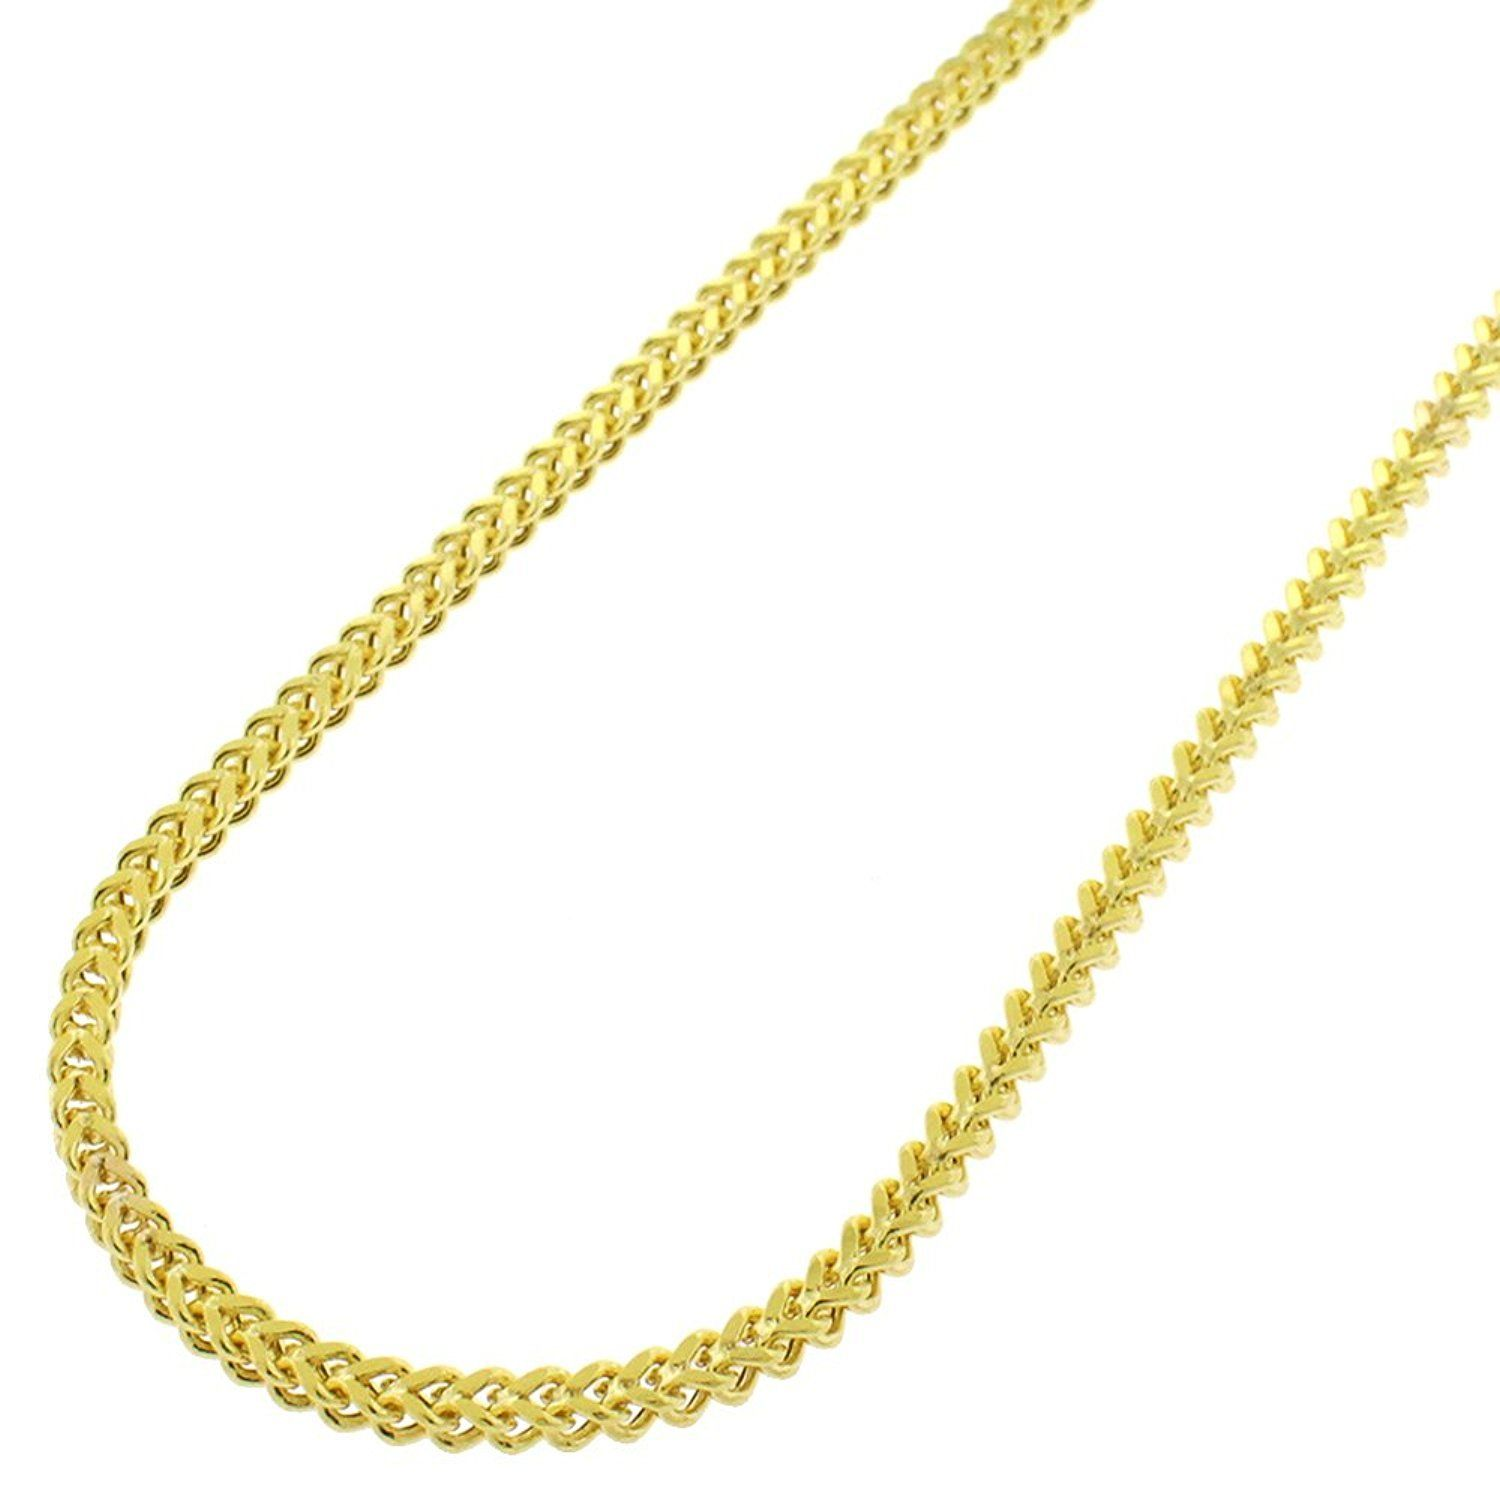 Mcs Jewelry 10 Karat Yellow Gold Hollow Franco Chain 24 Affiliate Mcs Chains Necklace Link Necklace Necklace